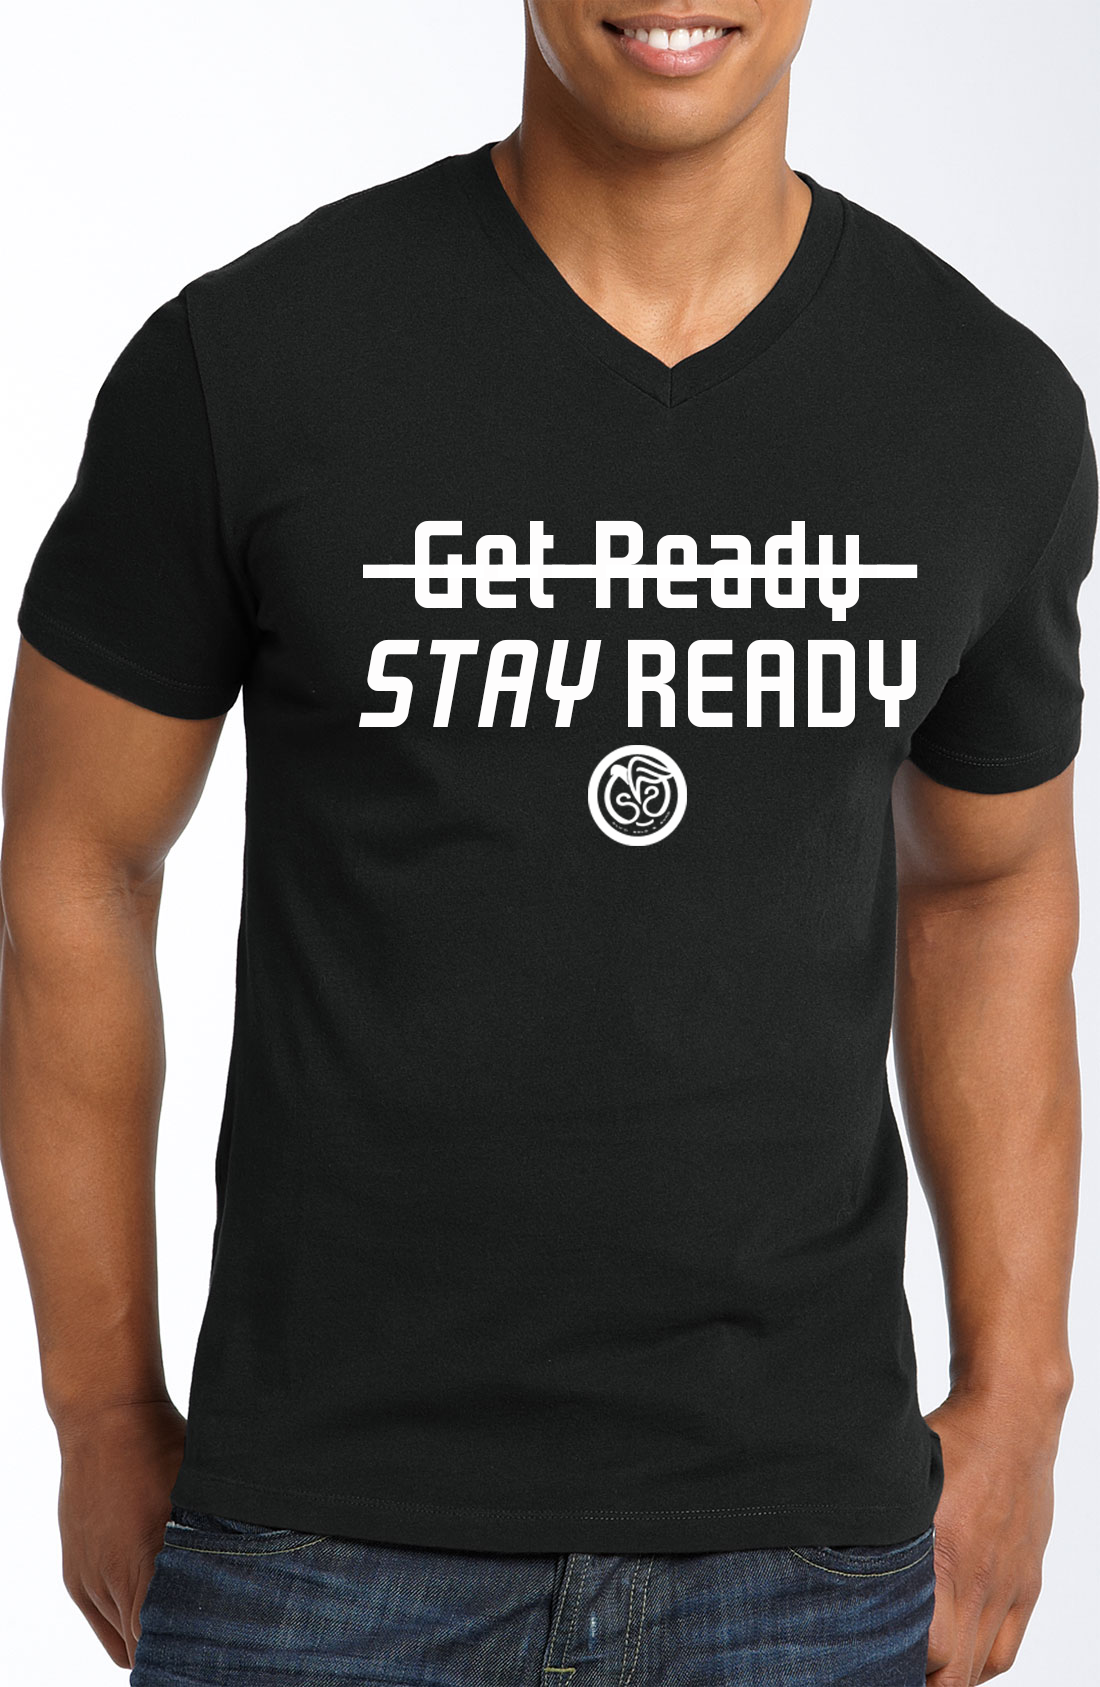 Stay ReadyBlack VNeck, Fly'n Solo & Sync